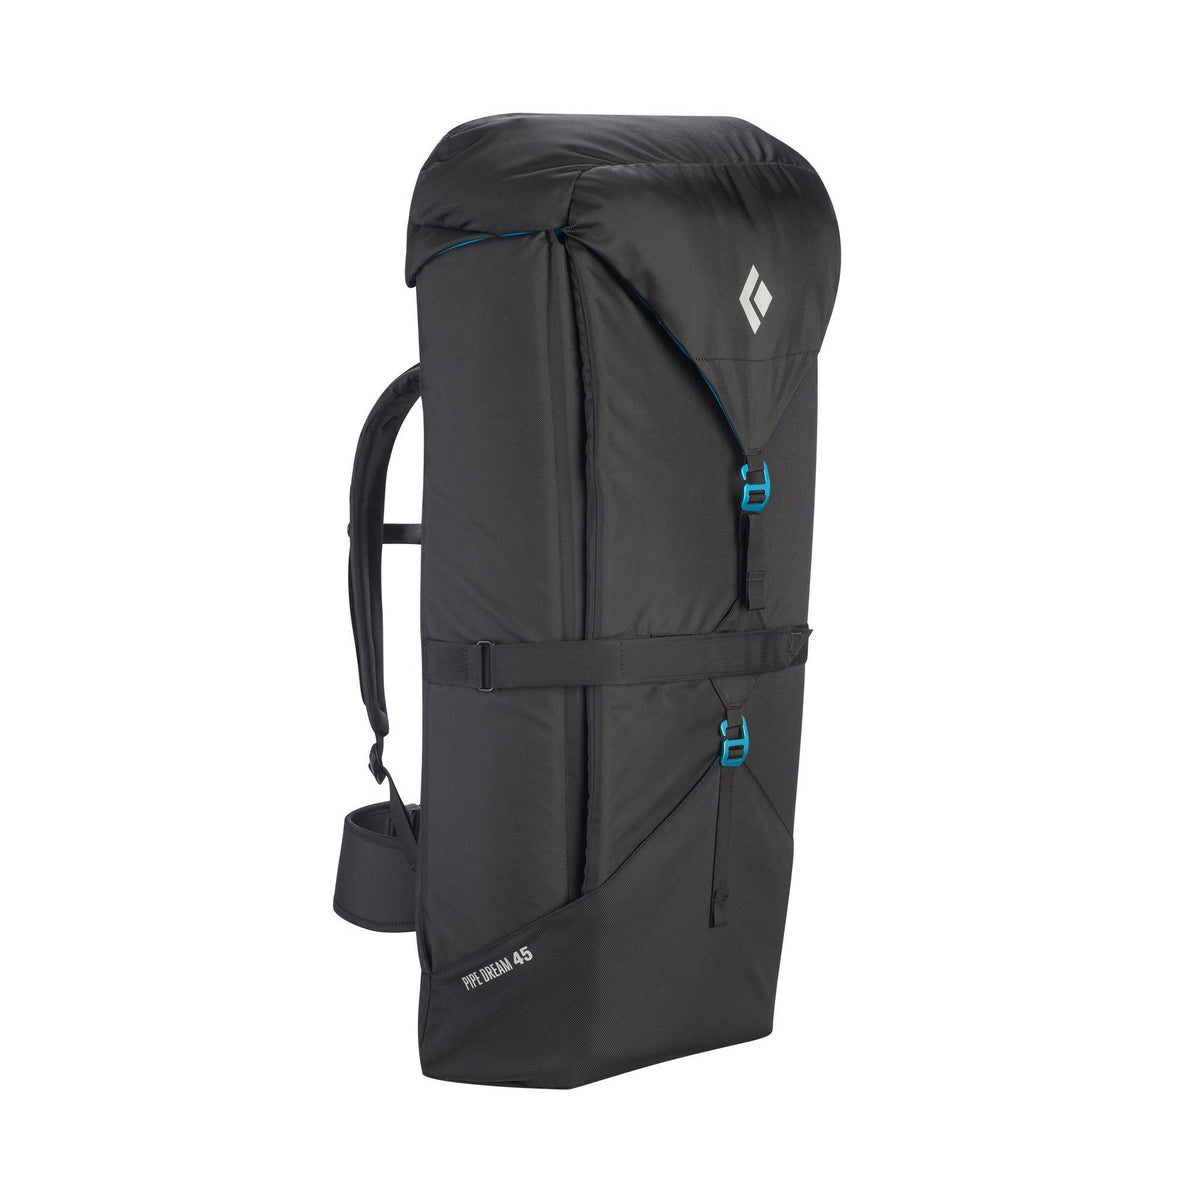 Black Diamond Pipe Dream 45 climbing pack, shown in black colour